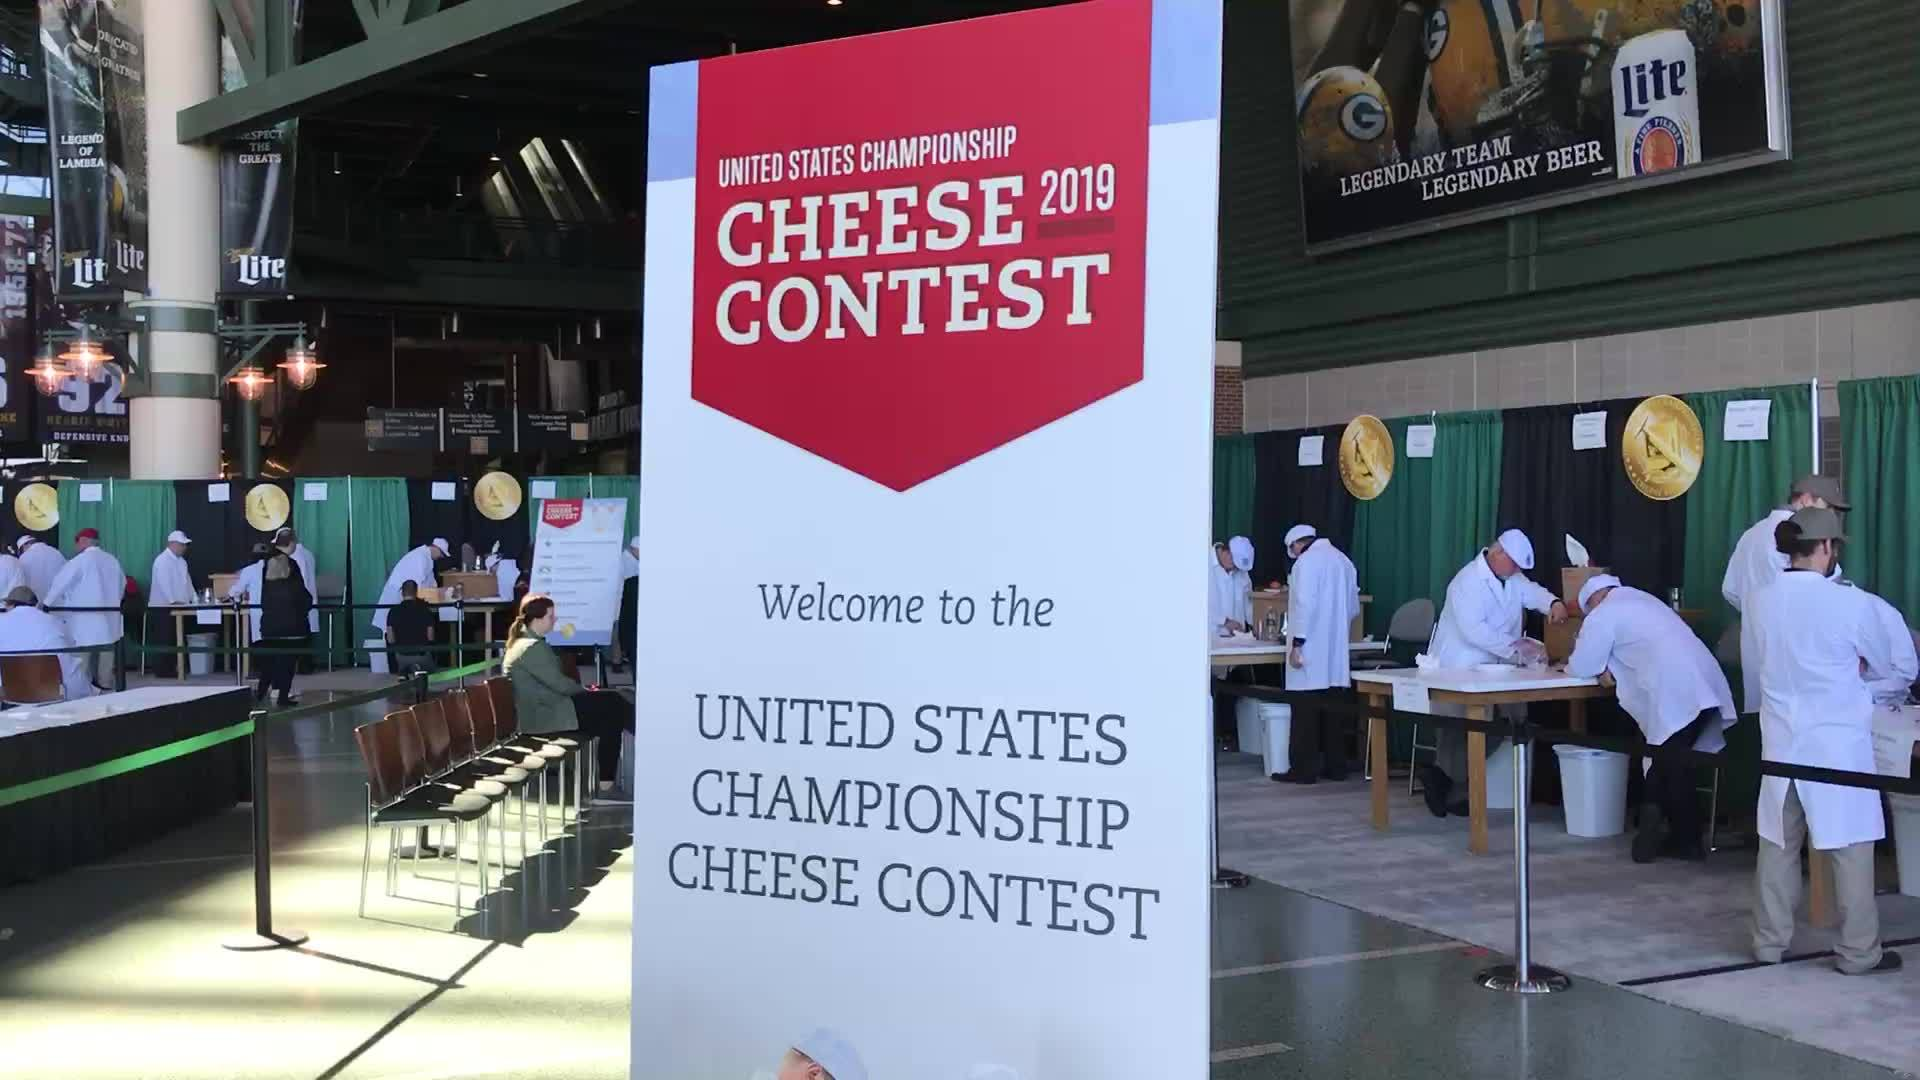 Lambeau Field Gets Cheesy for U.S. Championship Cheese Contest